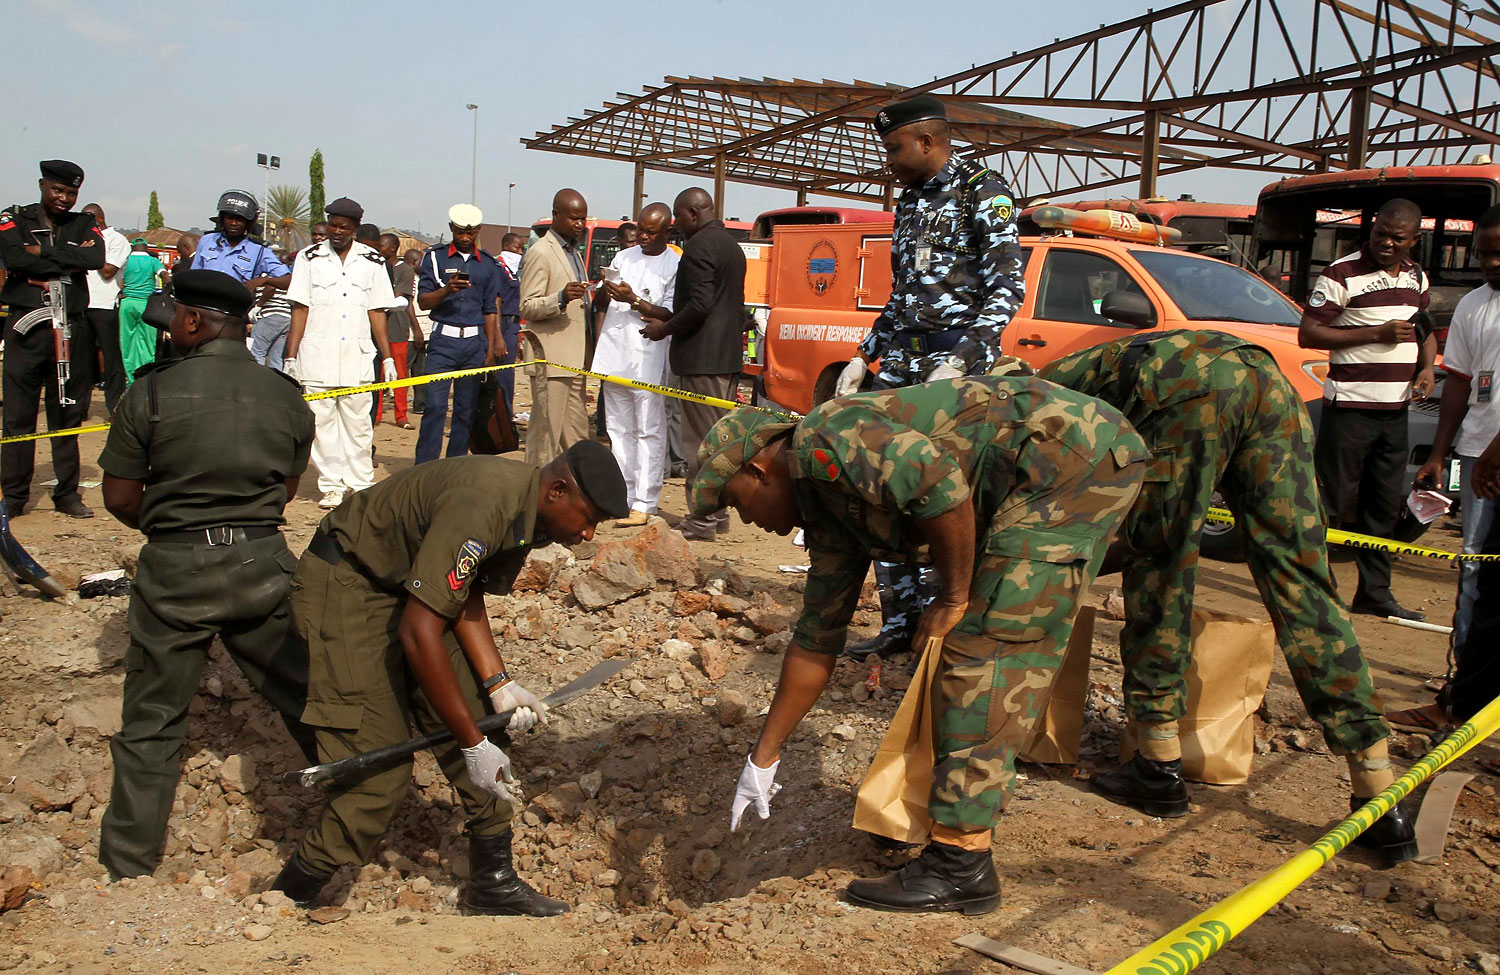 Bomb experts gather evidence at the scene of a bomb blast at Nyanyan in Abuja April 14, 2014.